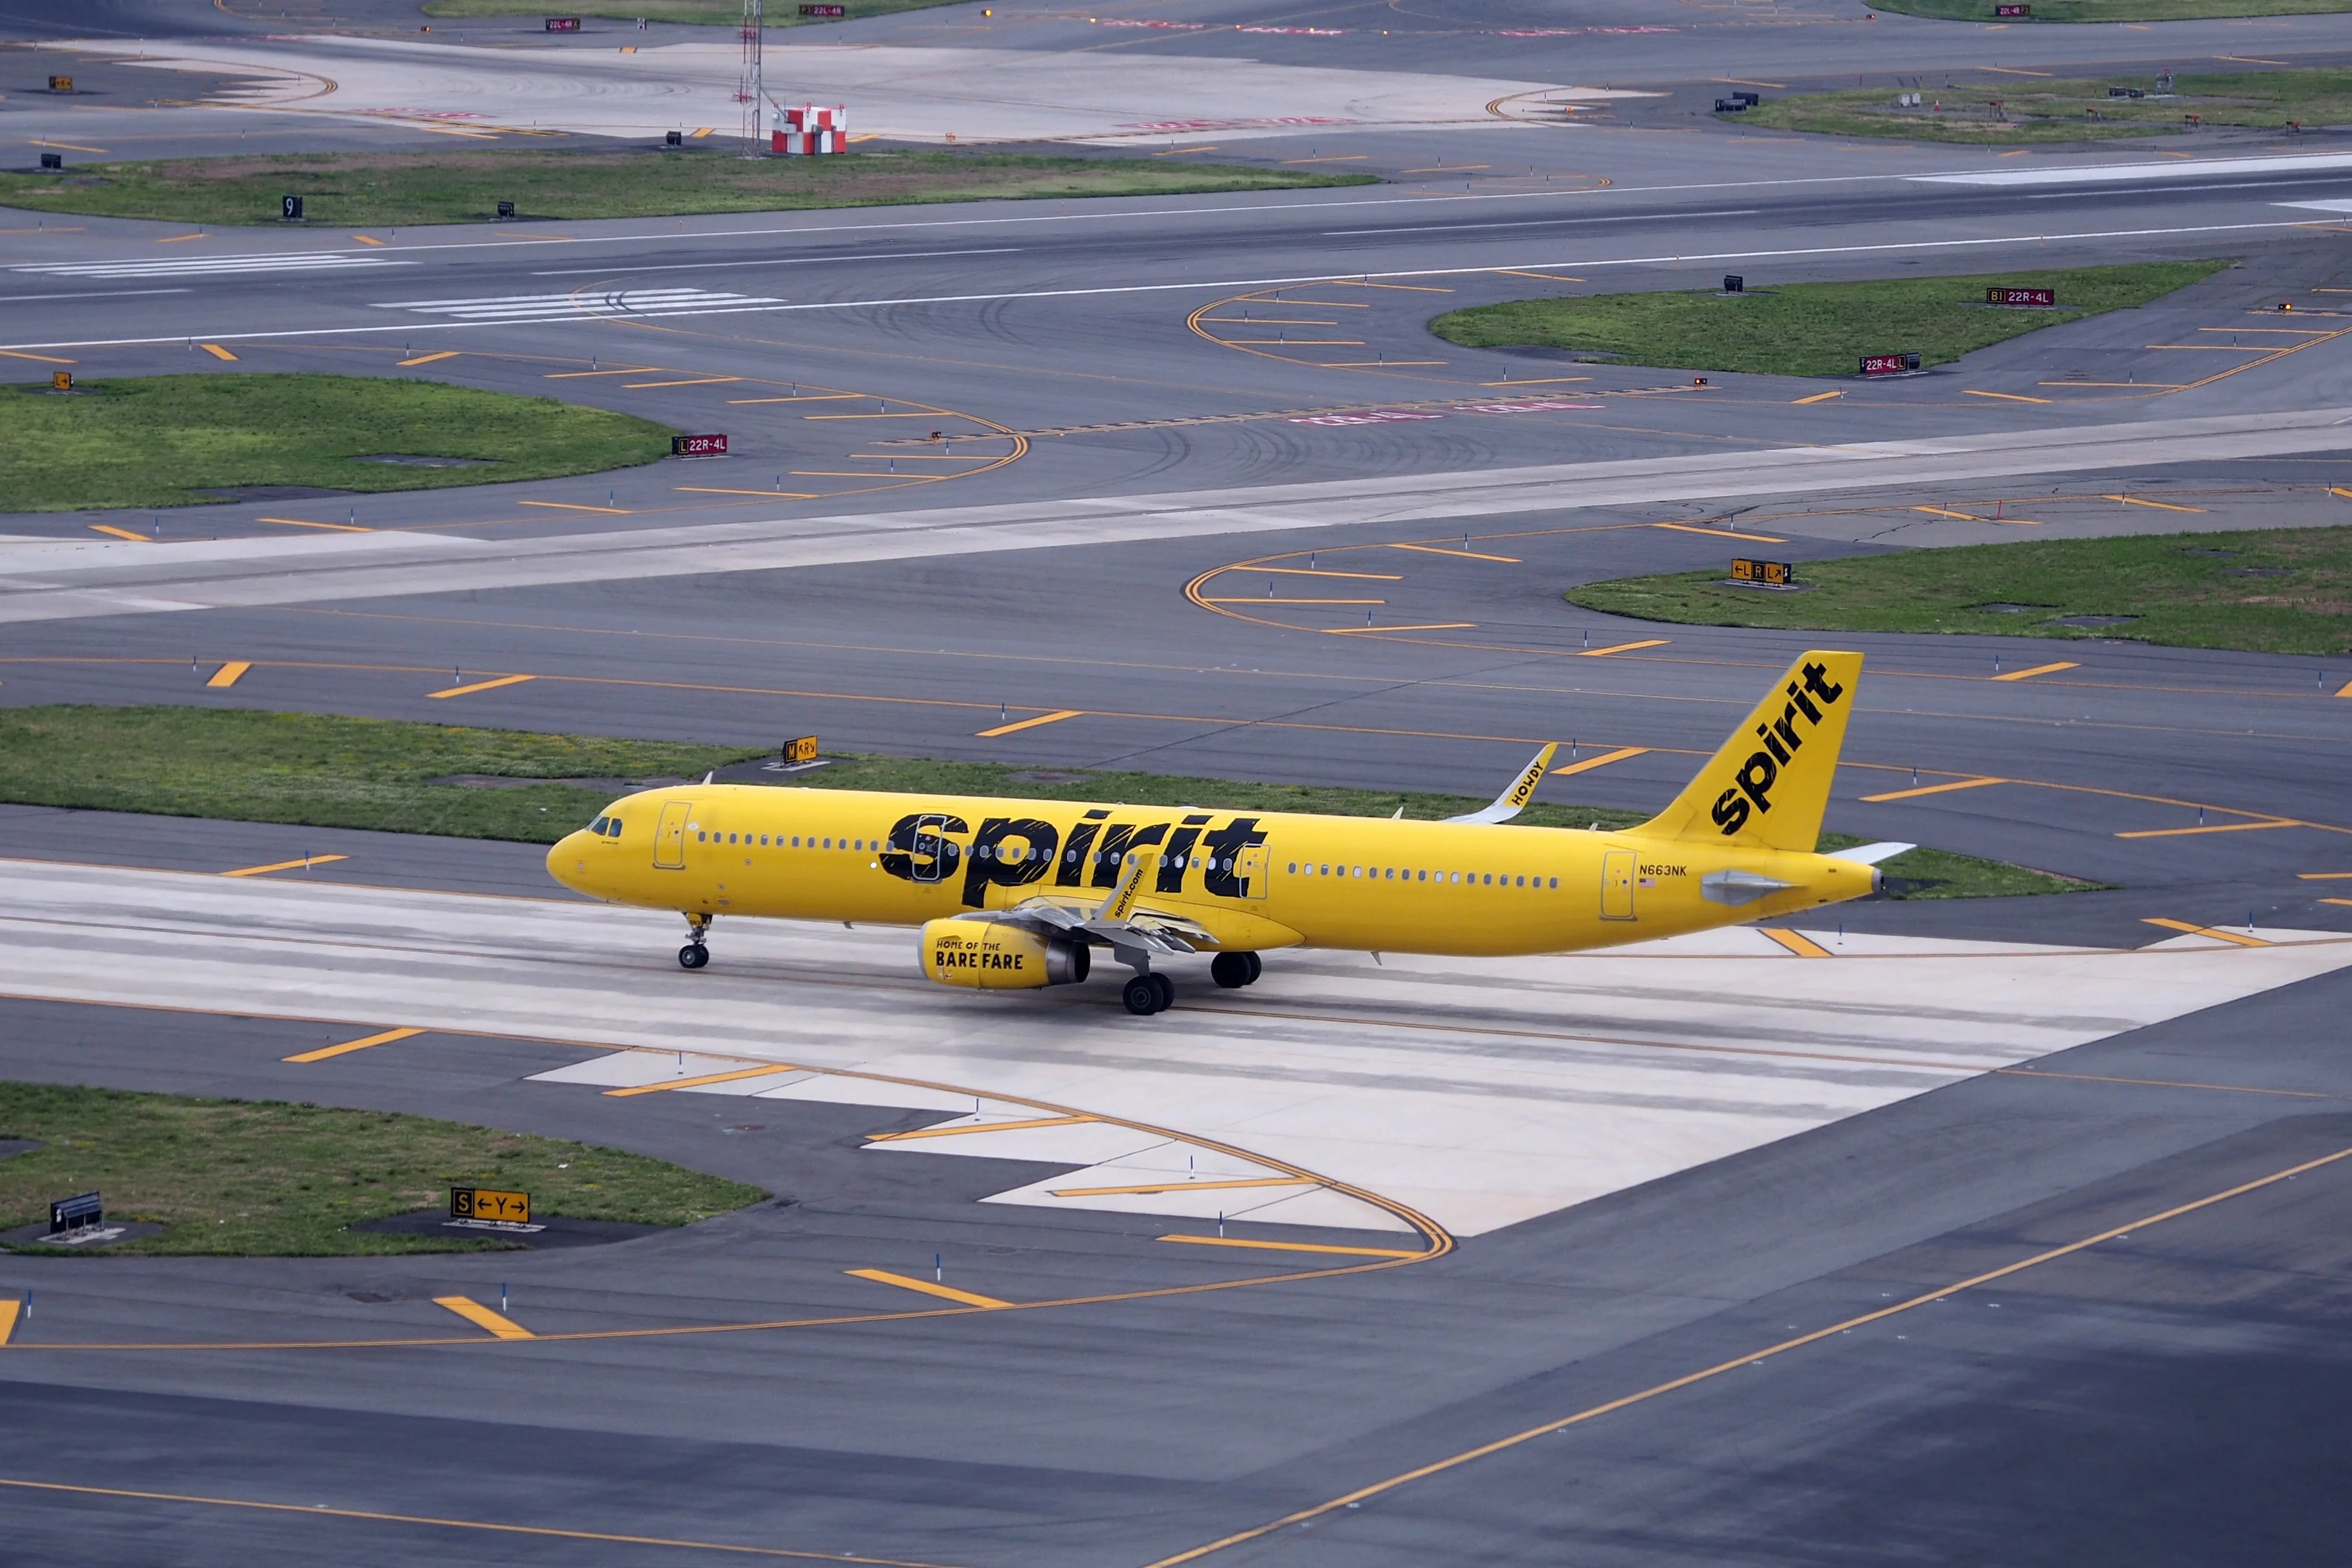 Spirit Airlines Ceo To Step Down From Position In 2019